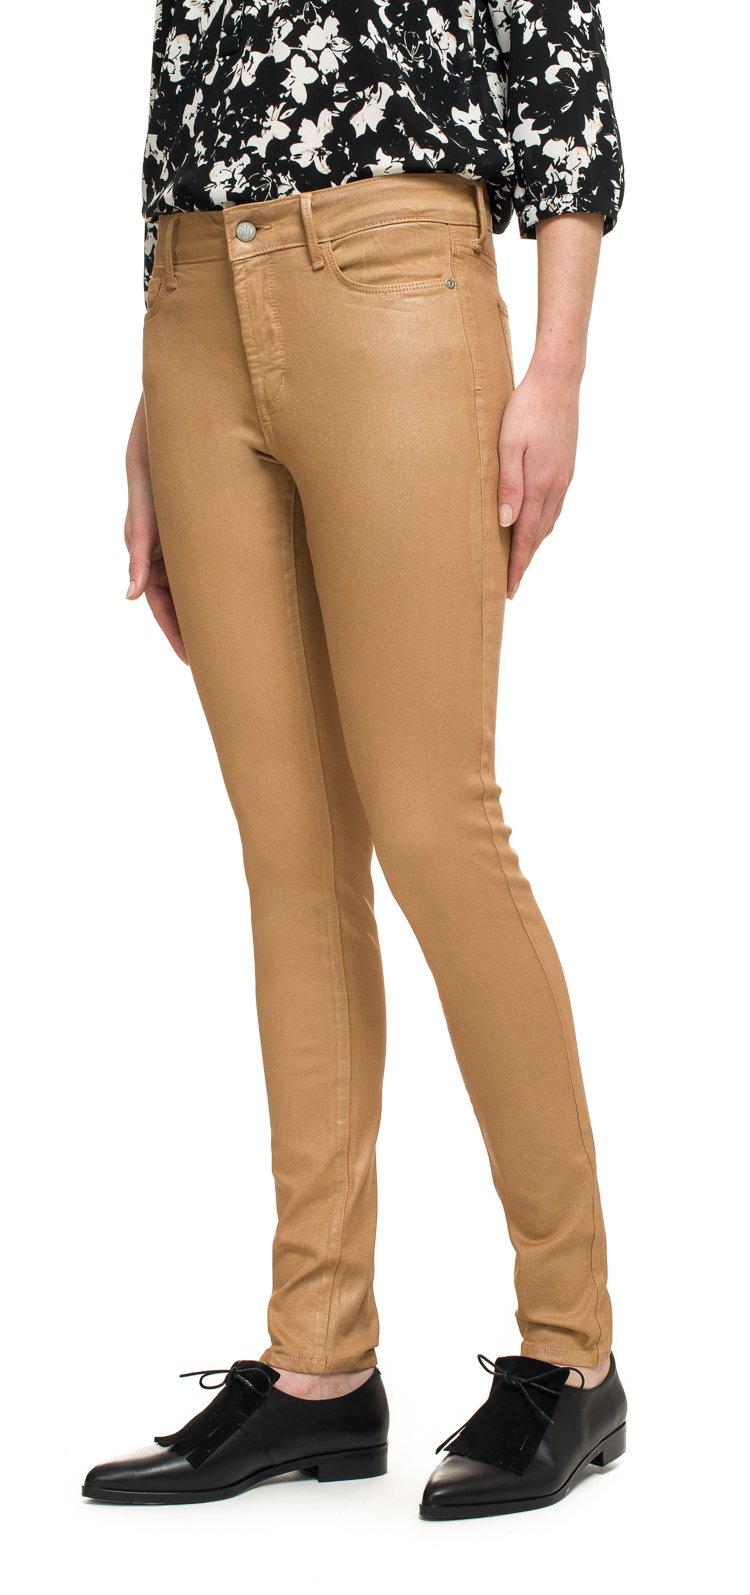 Image of NYDJ Jeans Ami Skinny Legging in rose gold coated denim Taille 34